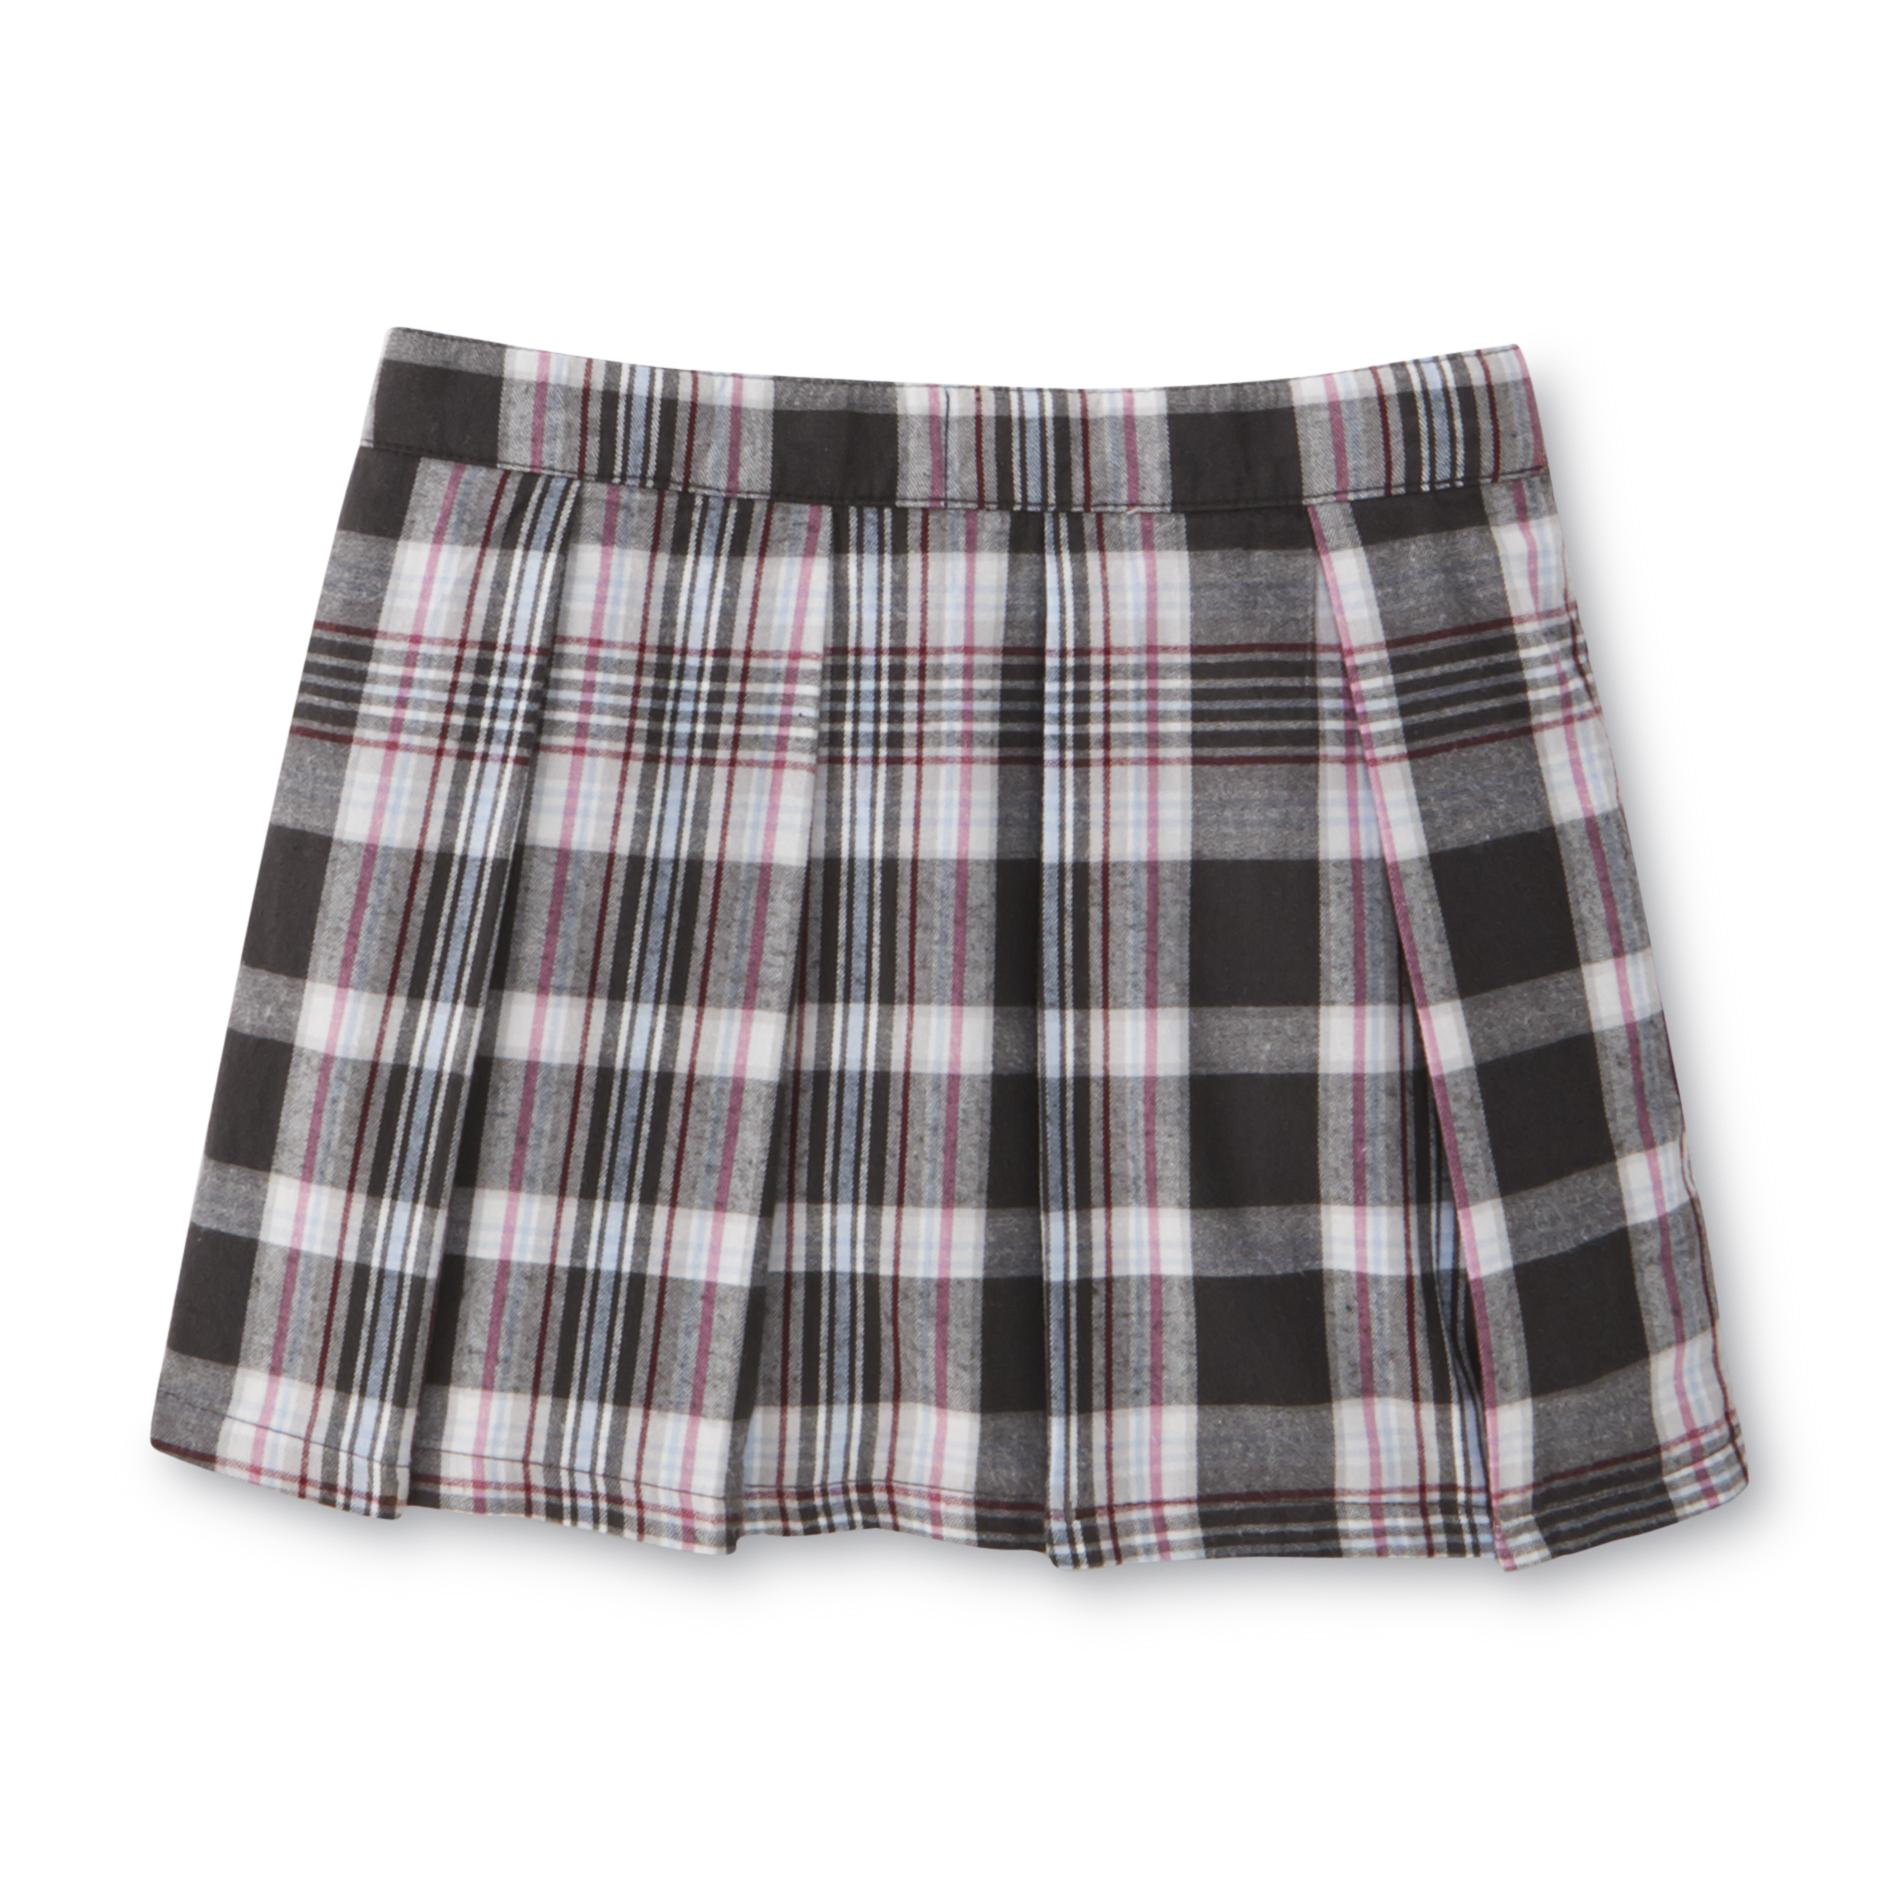 School Skirts Kmart Girls Scooter Skirt Kmart